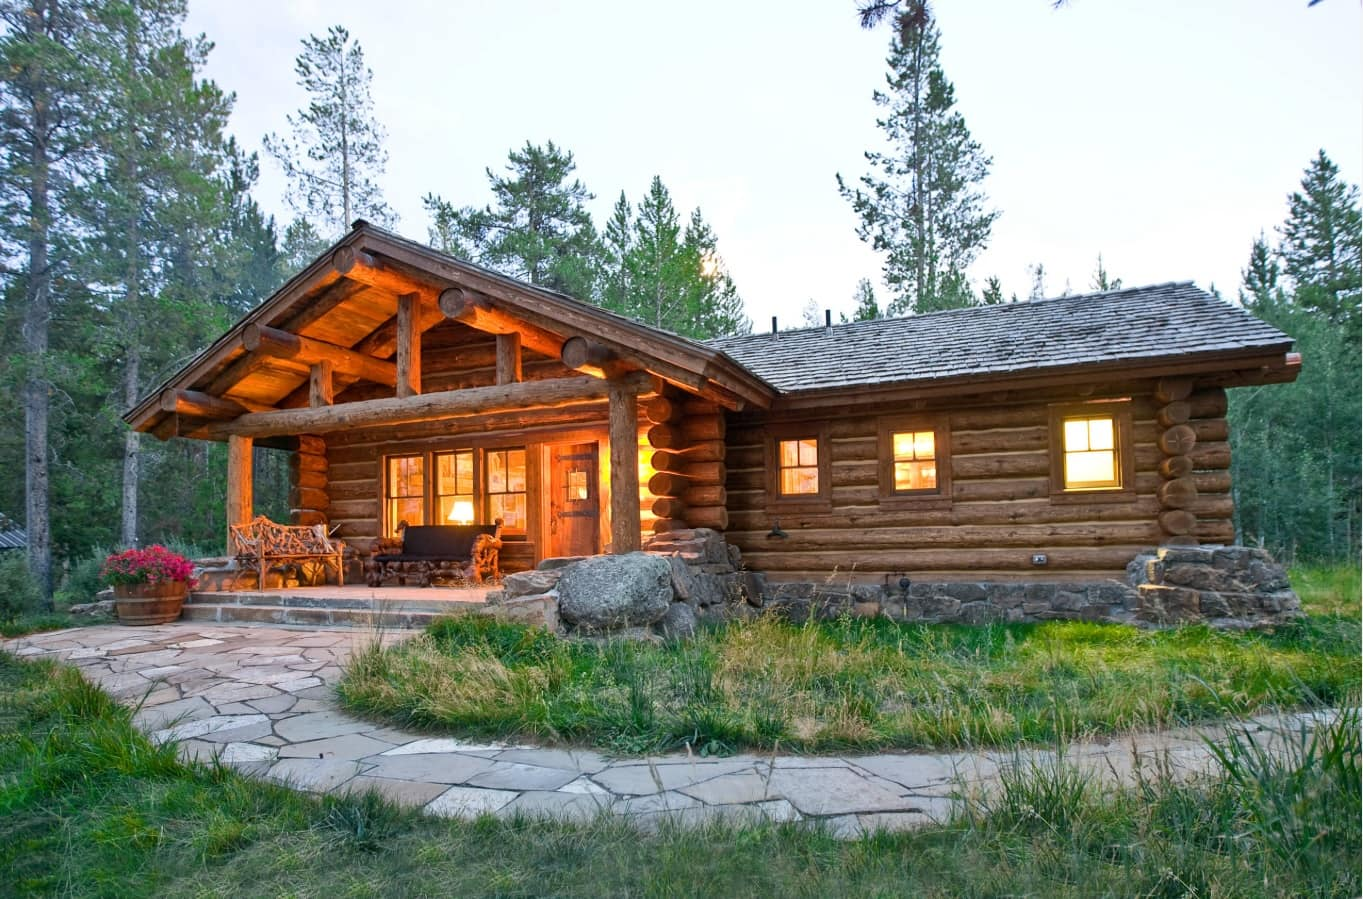 How to Turn Your Home Into a Dream Log Cabin. Eco styled exterior of the house